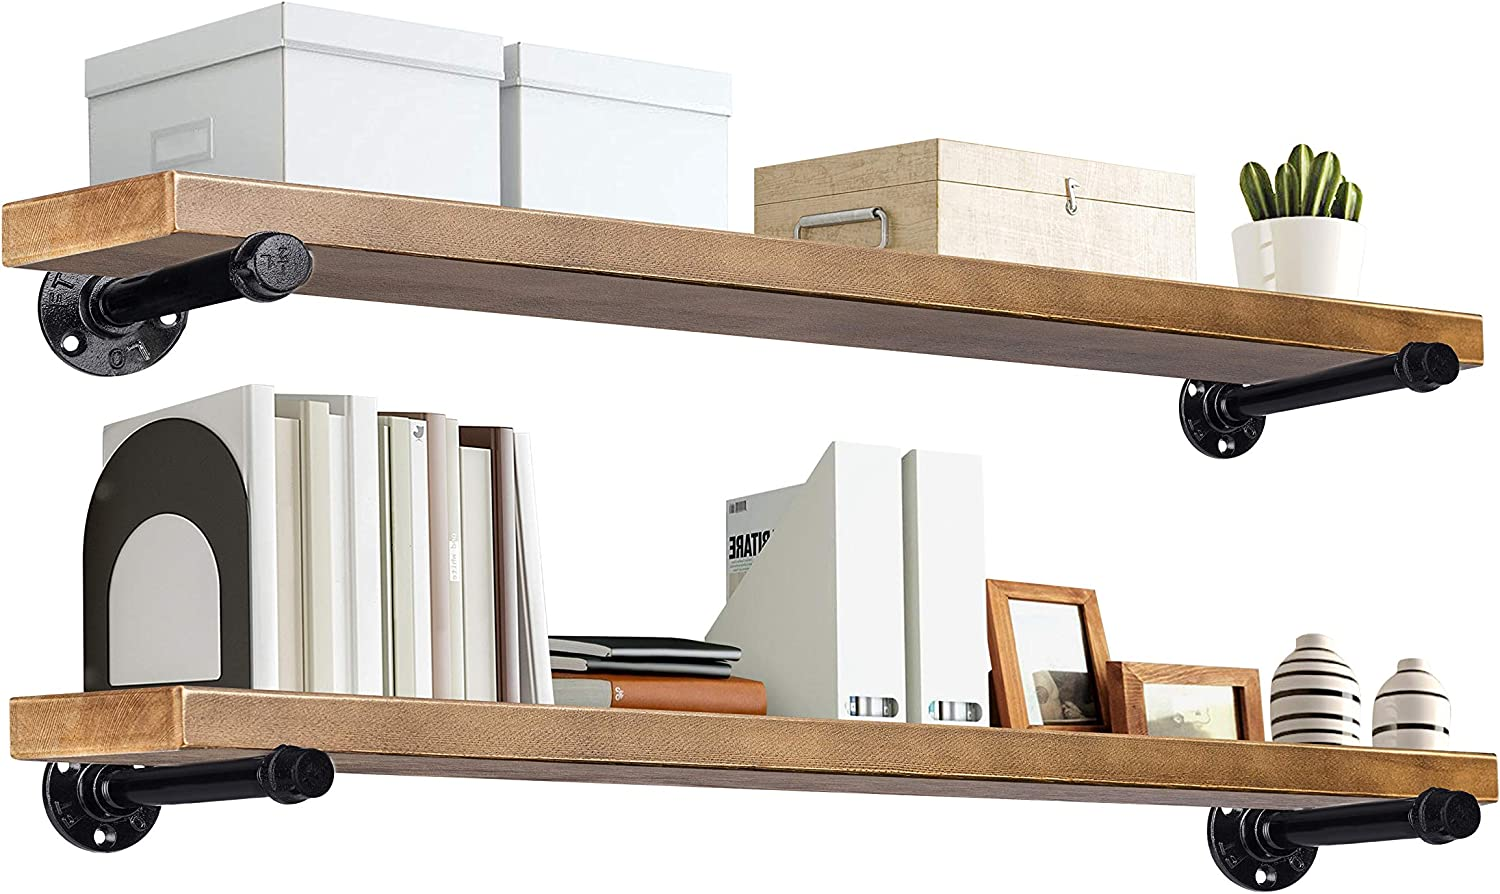 """TEN49 Industrial Wood Shelf - 36"""" Espresso Rustic Wooden Wall Shelves with Iron Pipes - Contemporary Interior Decor Floating Shelving with Pipe Brackets - Farmhouse Style Bookshelf Set of 2"""